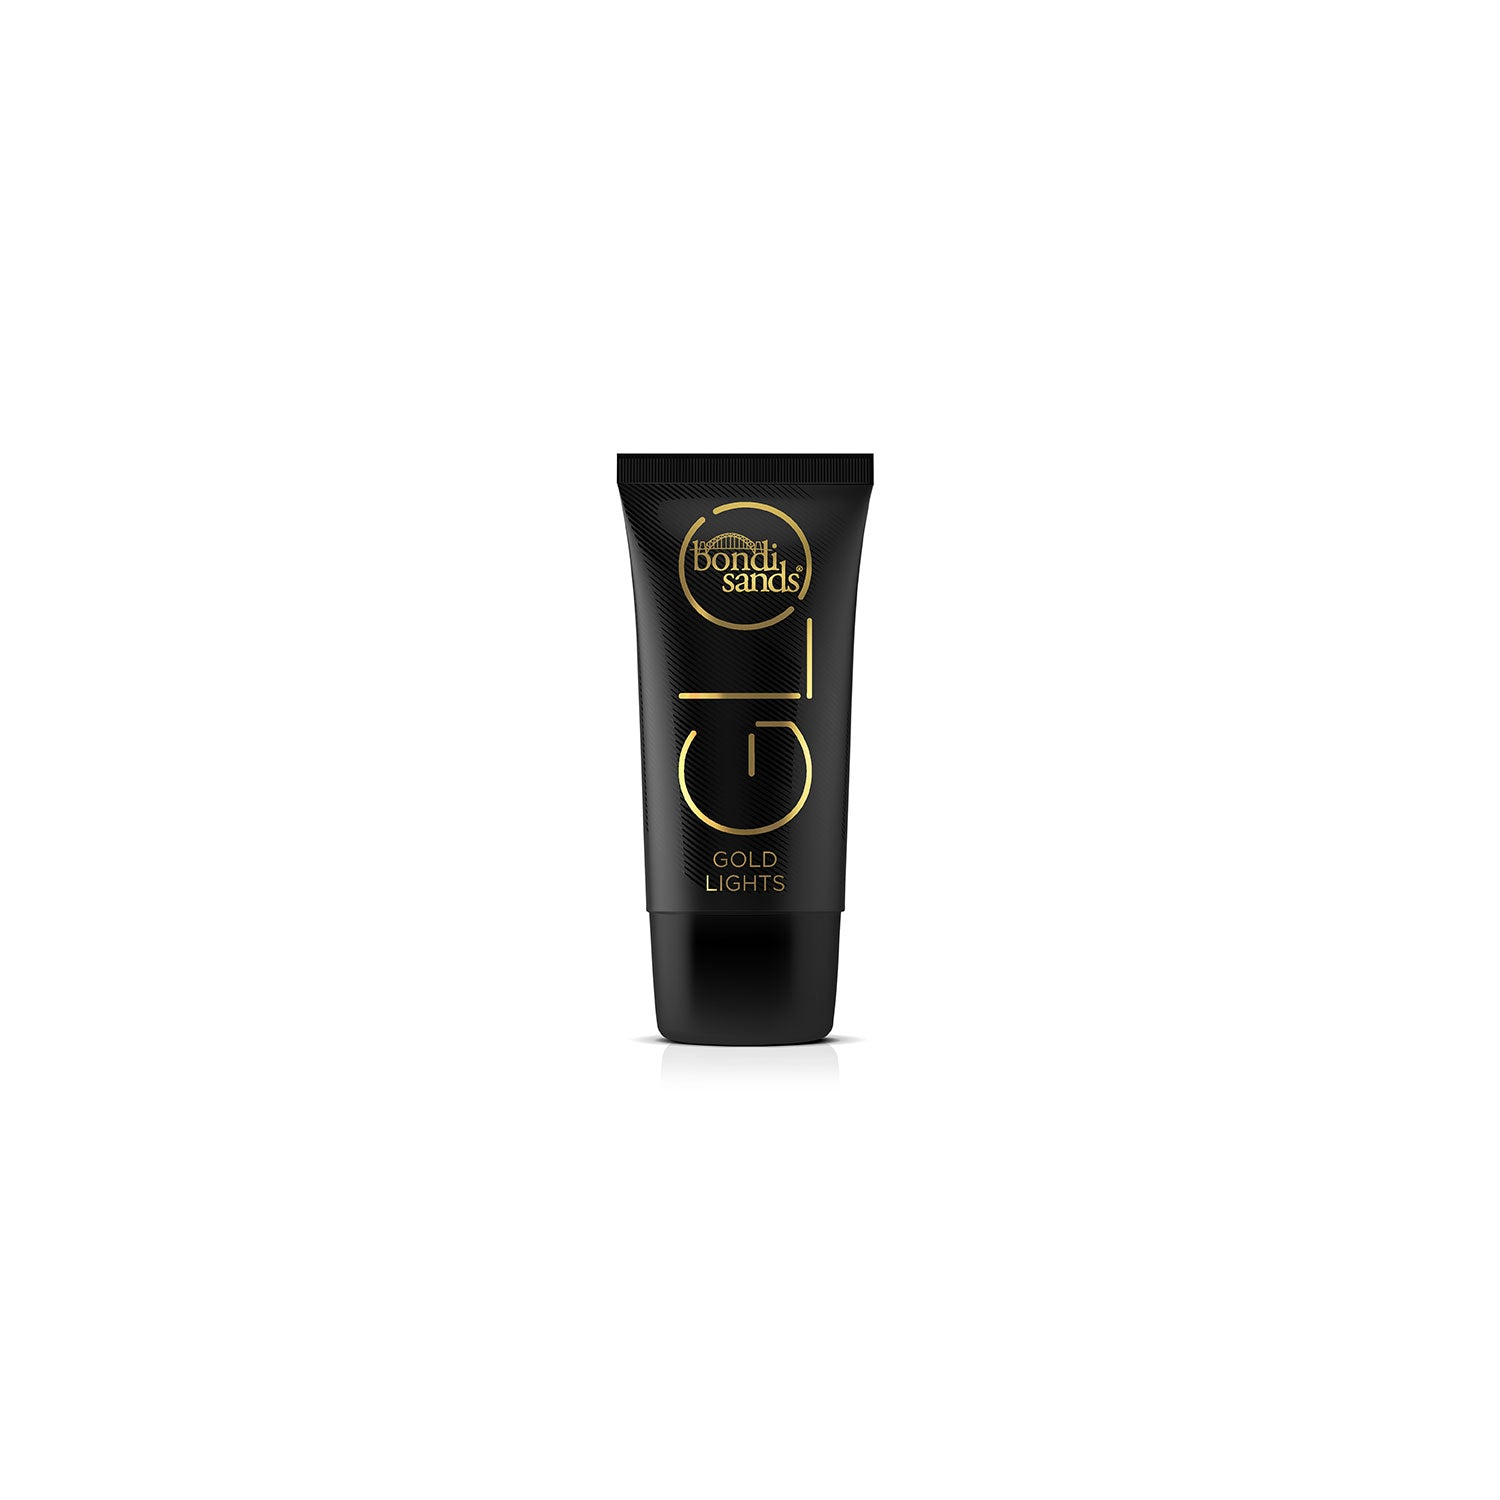 Bondi Sands Glo Lights Gold 25ml